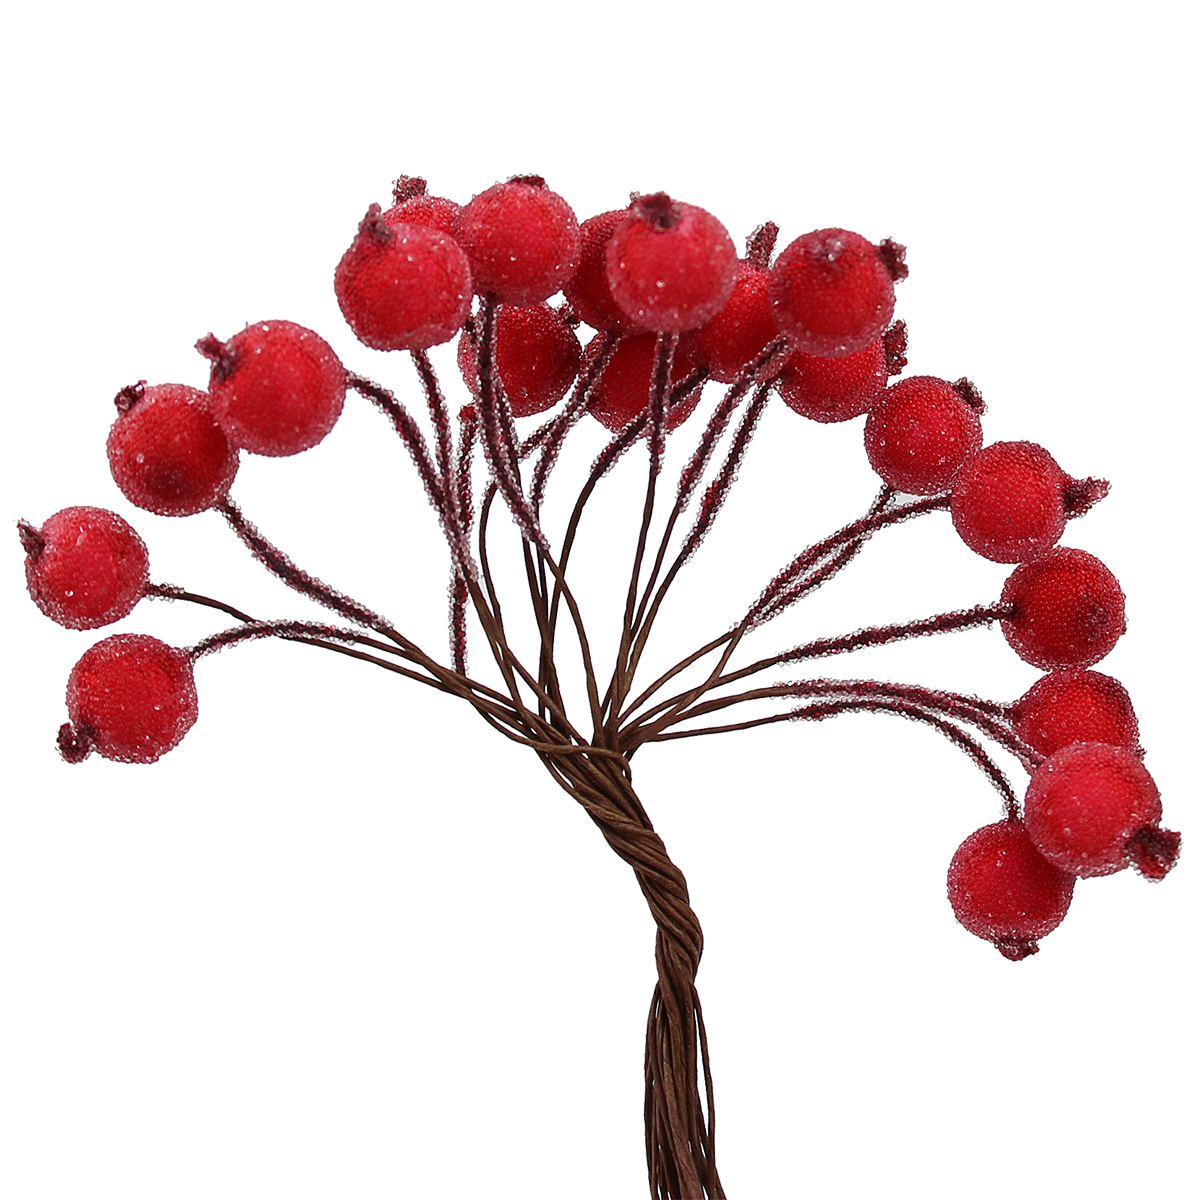 200pcs Artificial Frosted Berry Chic Mini Frosted Fruit Holly Artificial Flower